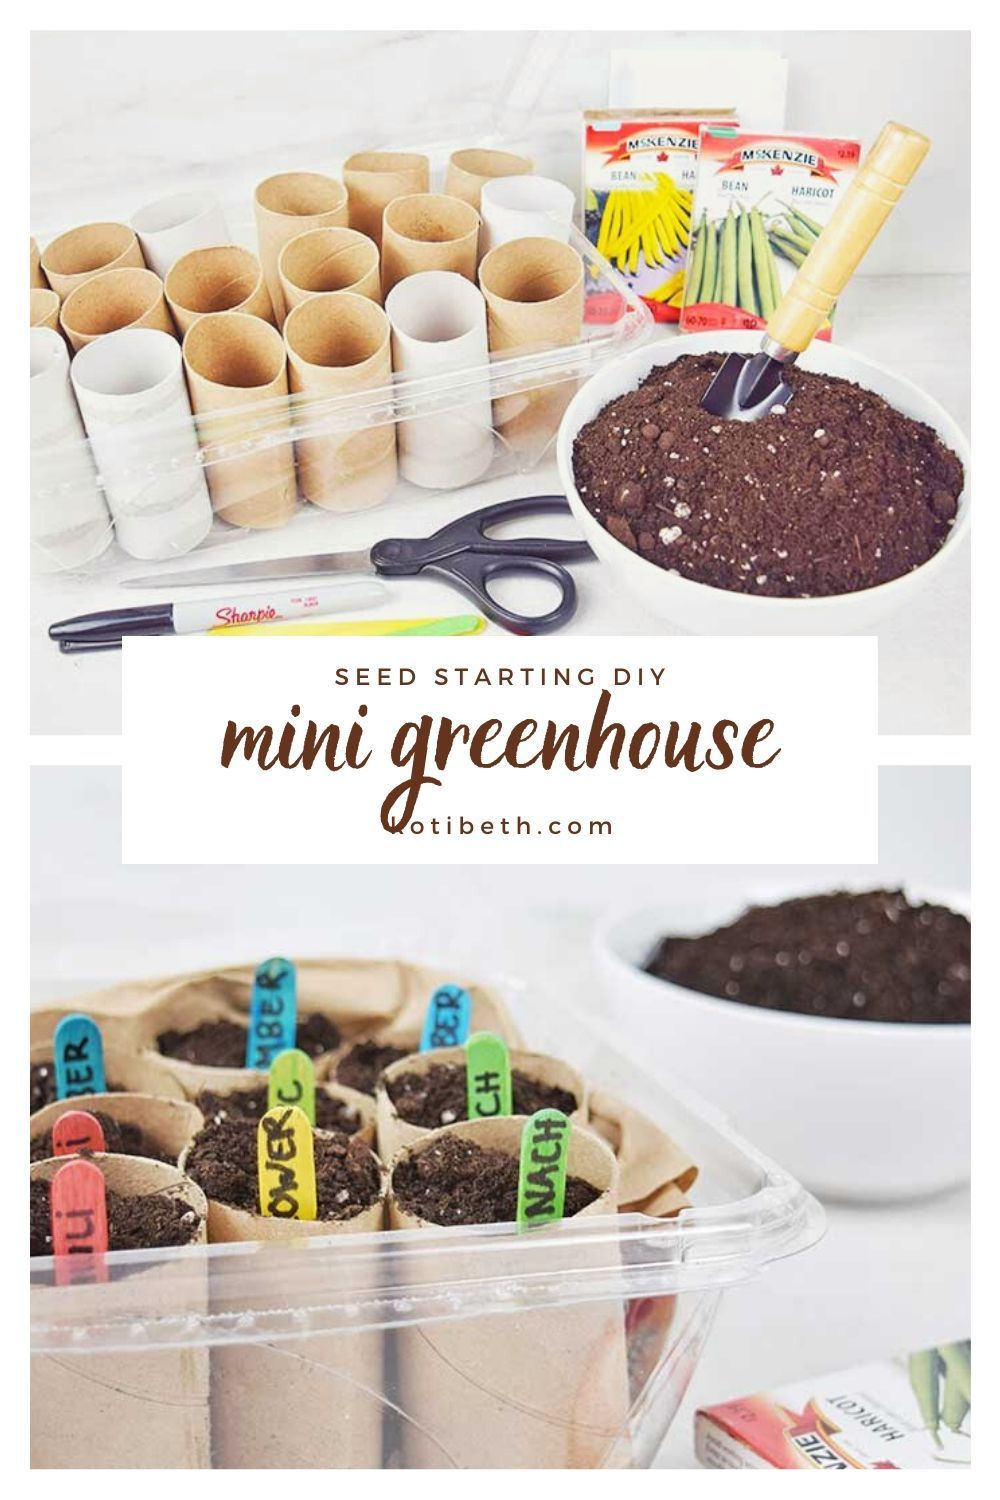 How to make a mini greenhouse to start seeds indoors